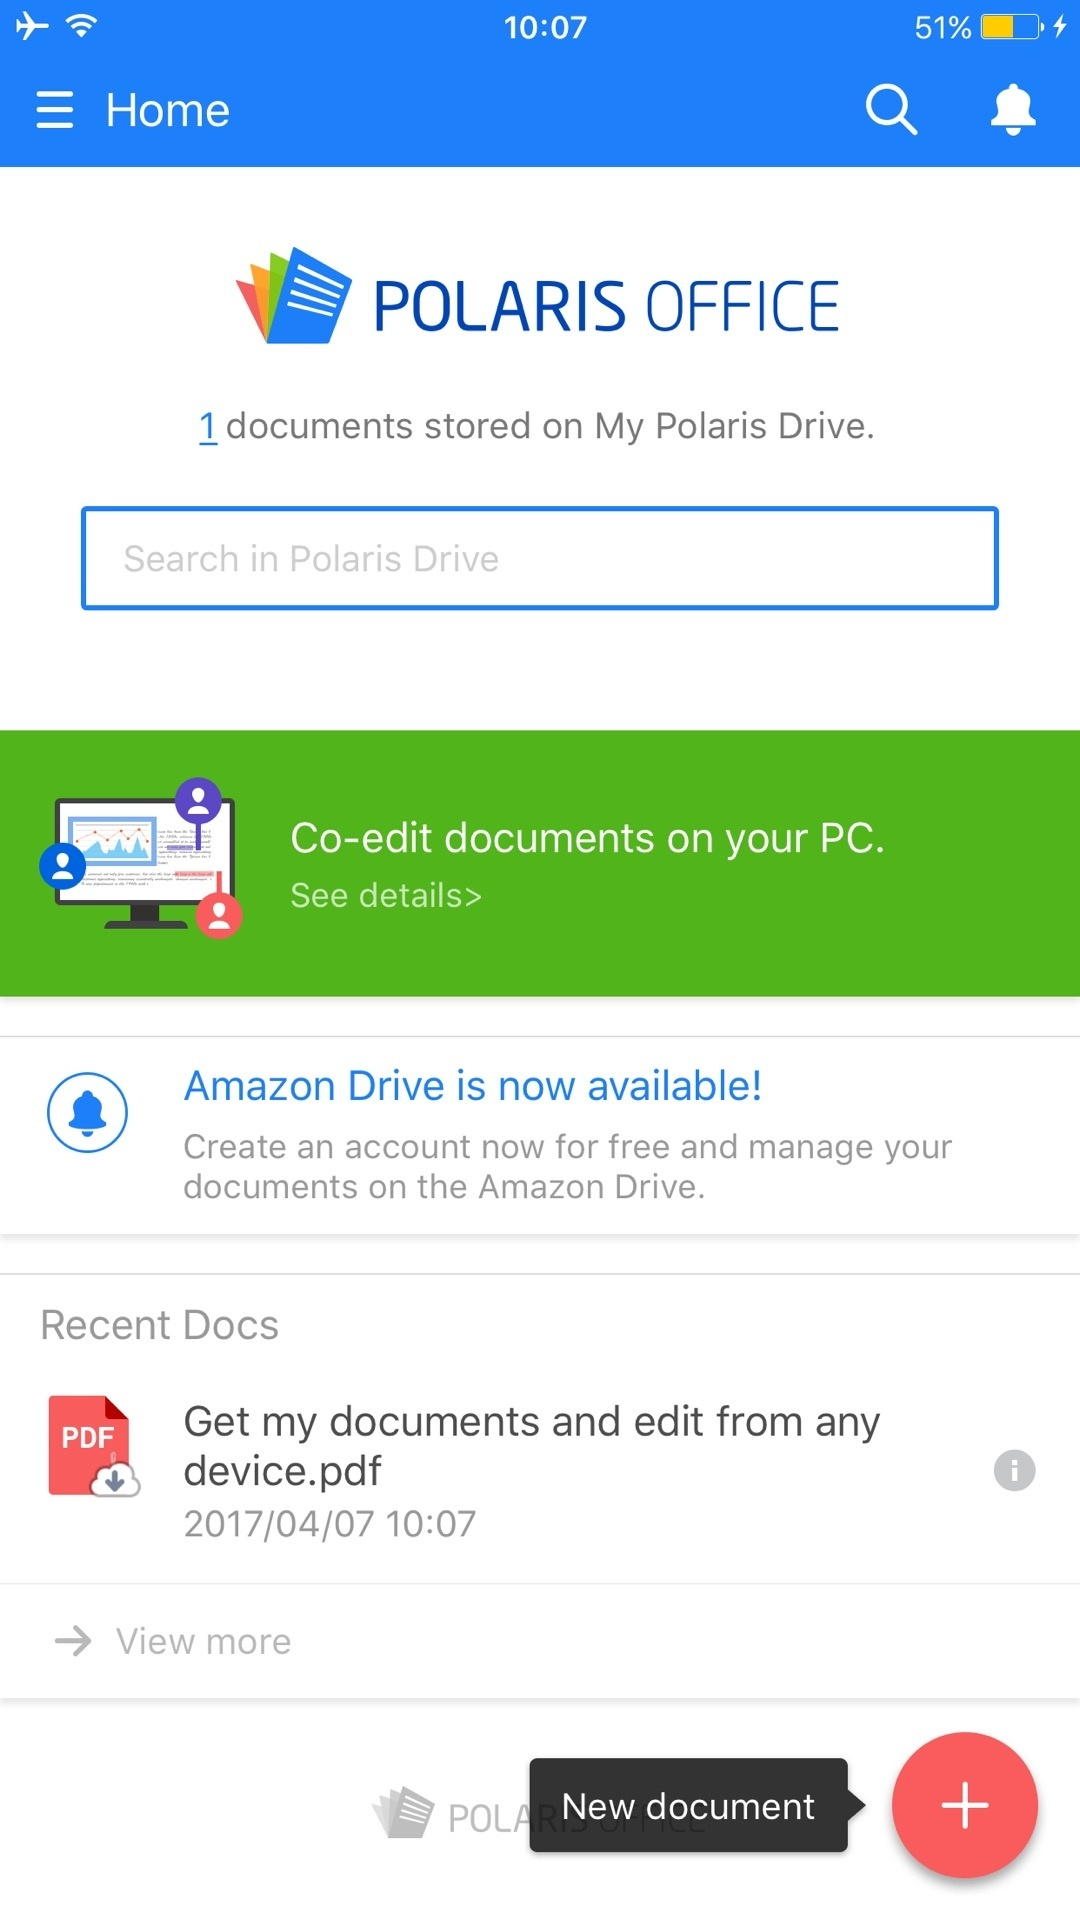 What is the best app to use to edit a document? - Quora